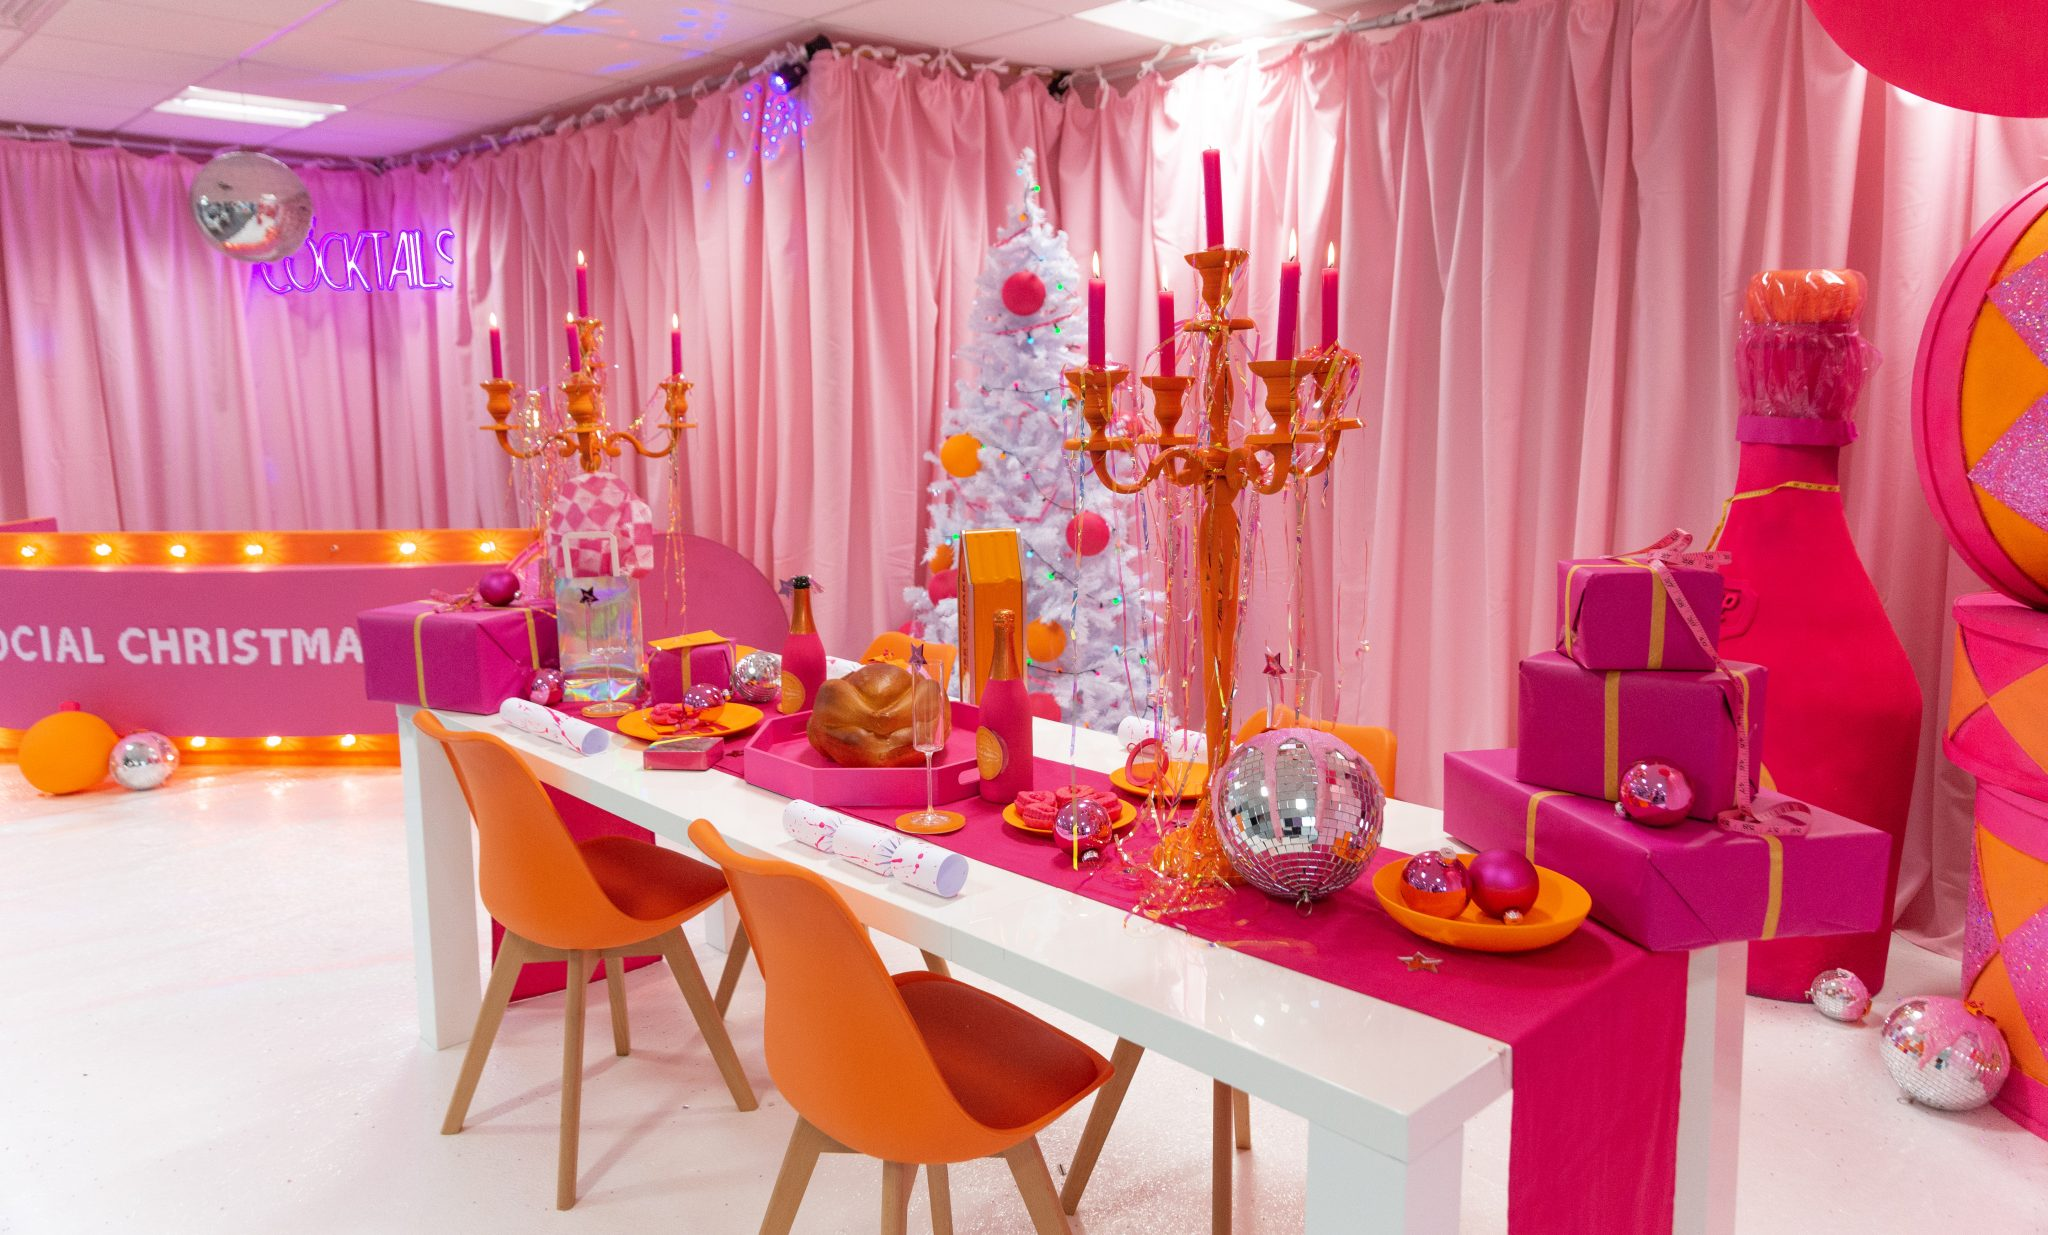 Make Events | Corporate and Virtual Events Company Manchester | Christmas table